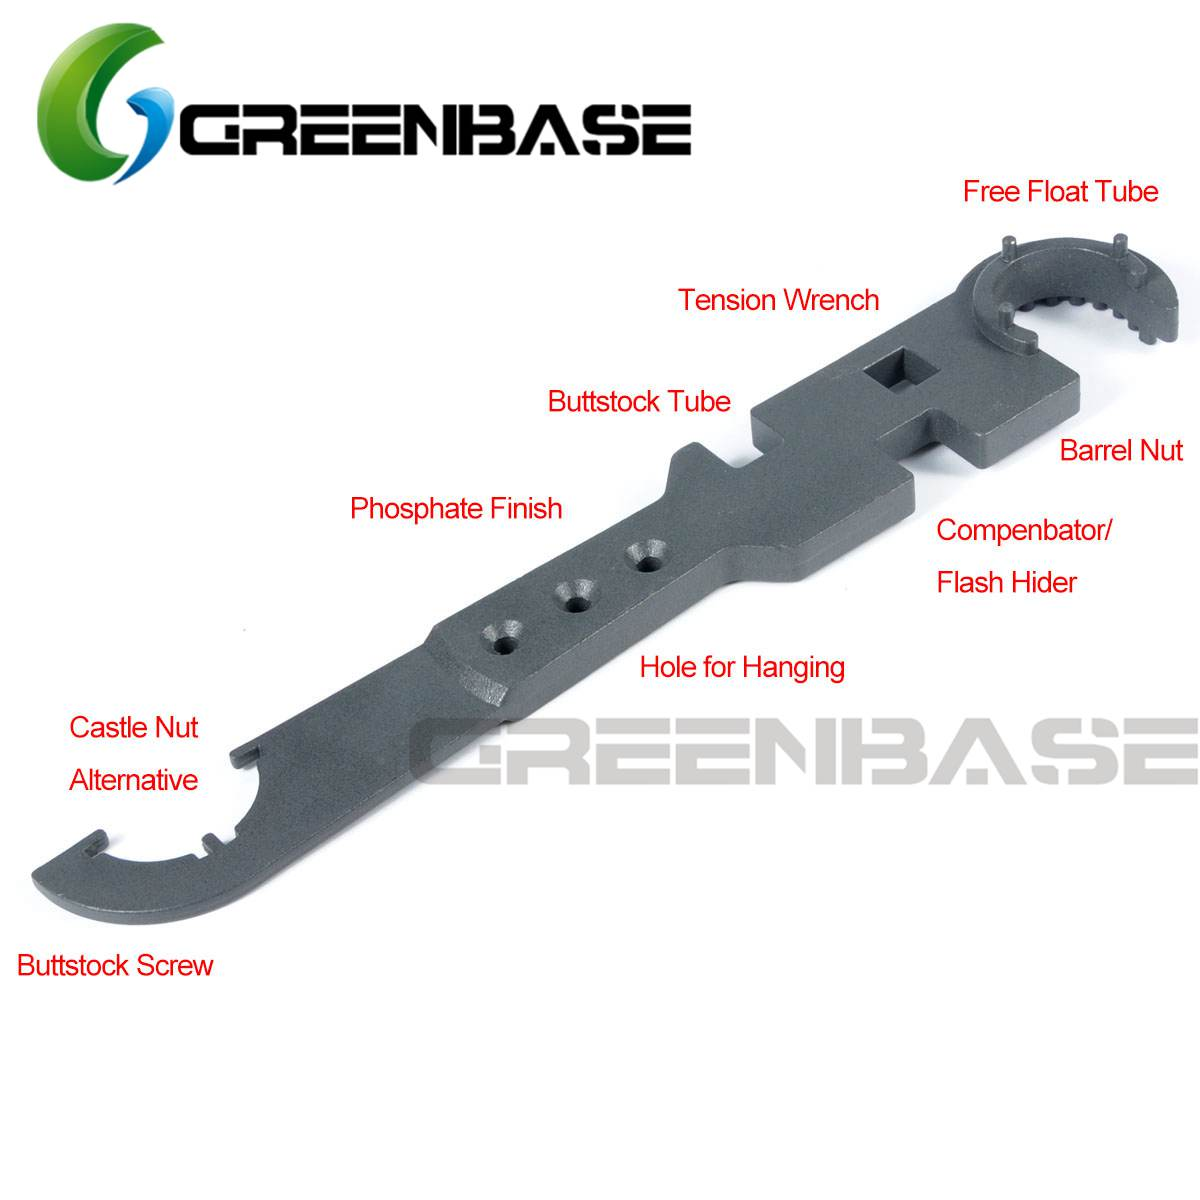 Greenbase Armorer Wrench For AR15 Huandguard Tool Multi Function Armorer Wrench Combo Tool image